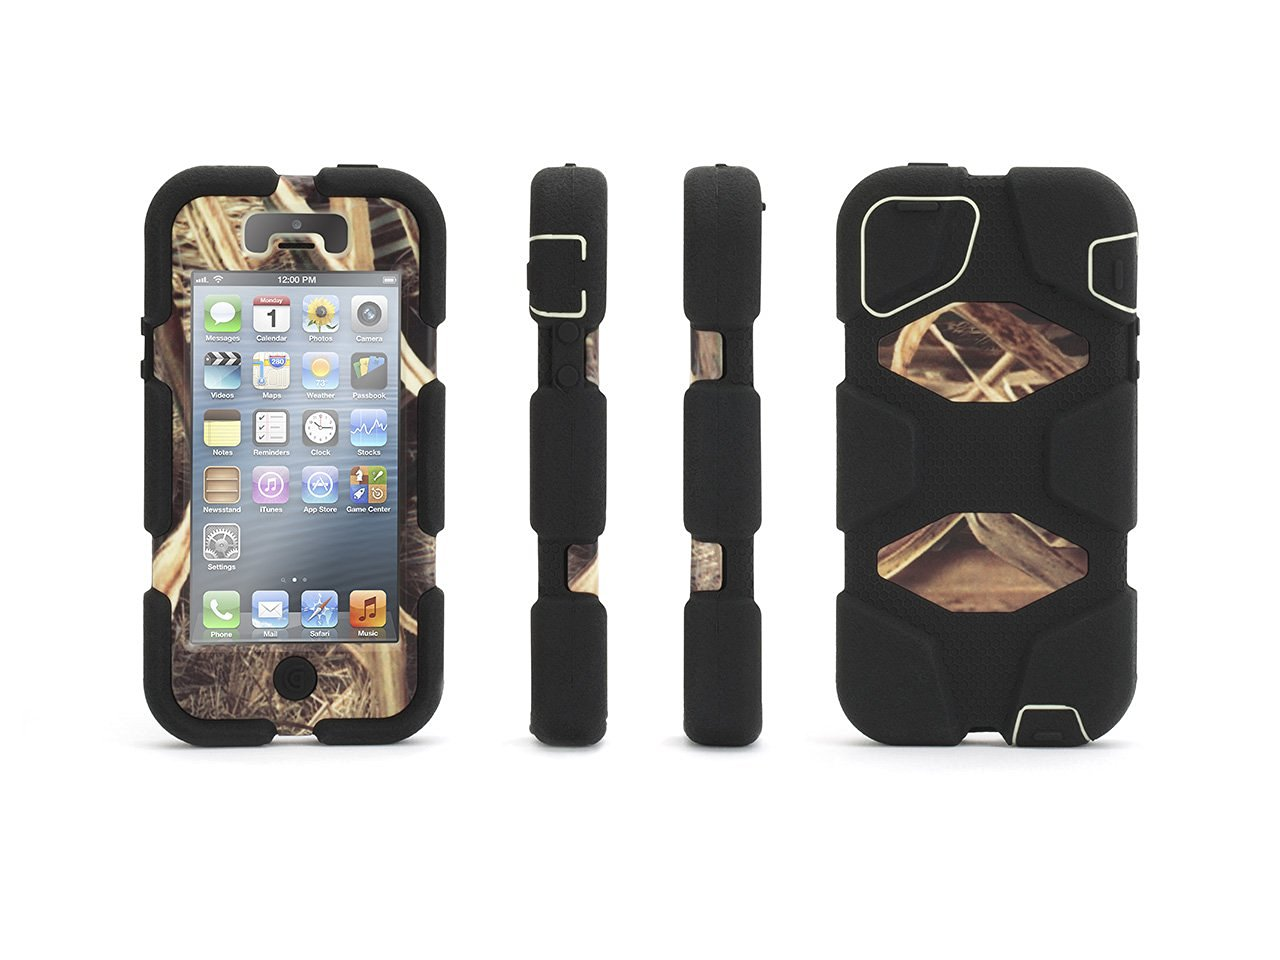 new product 2e512 18b9b Buy Griffin iPhone 5/5s, iPhone SE Rugged Case, Survivor All-Terrain ...